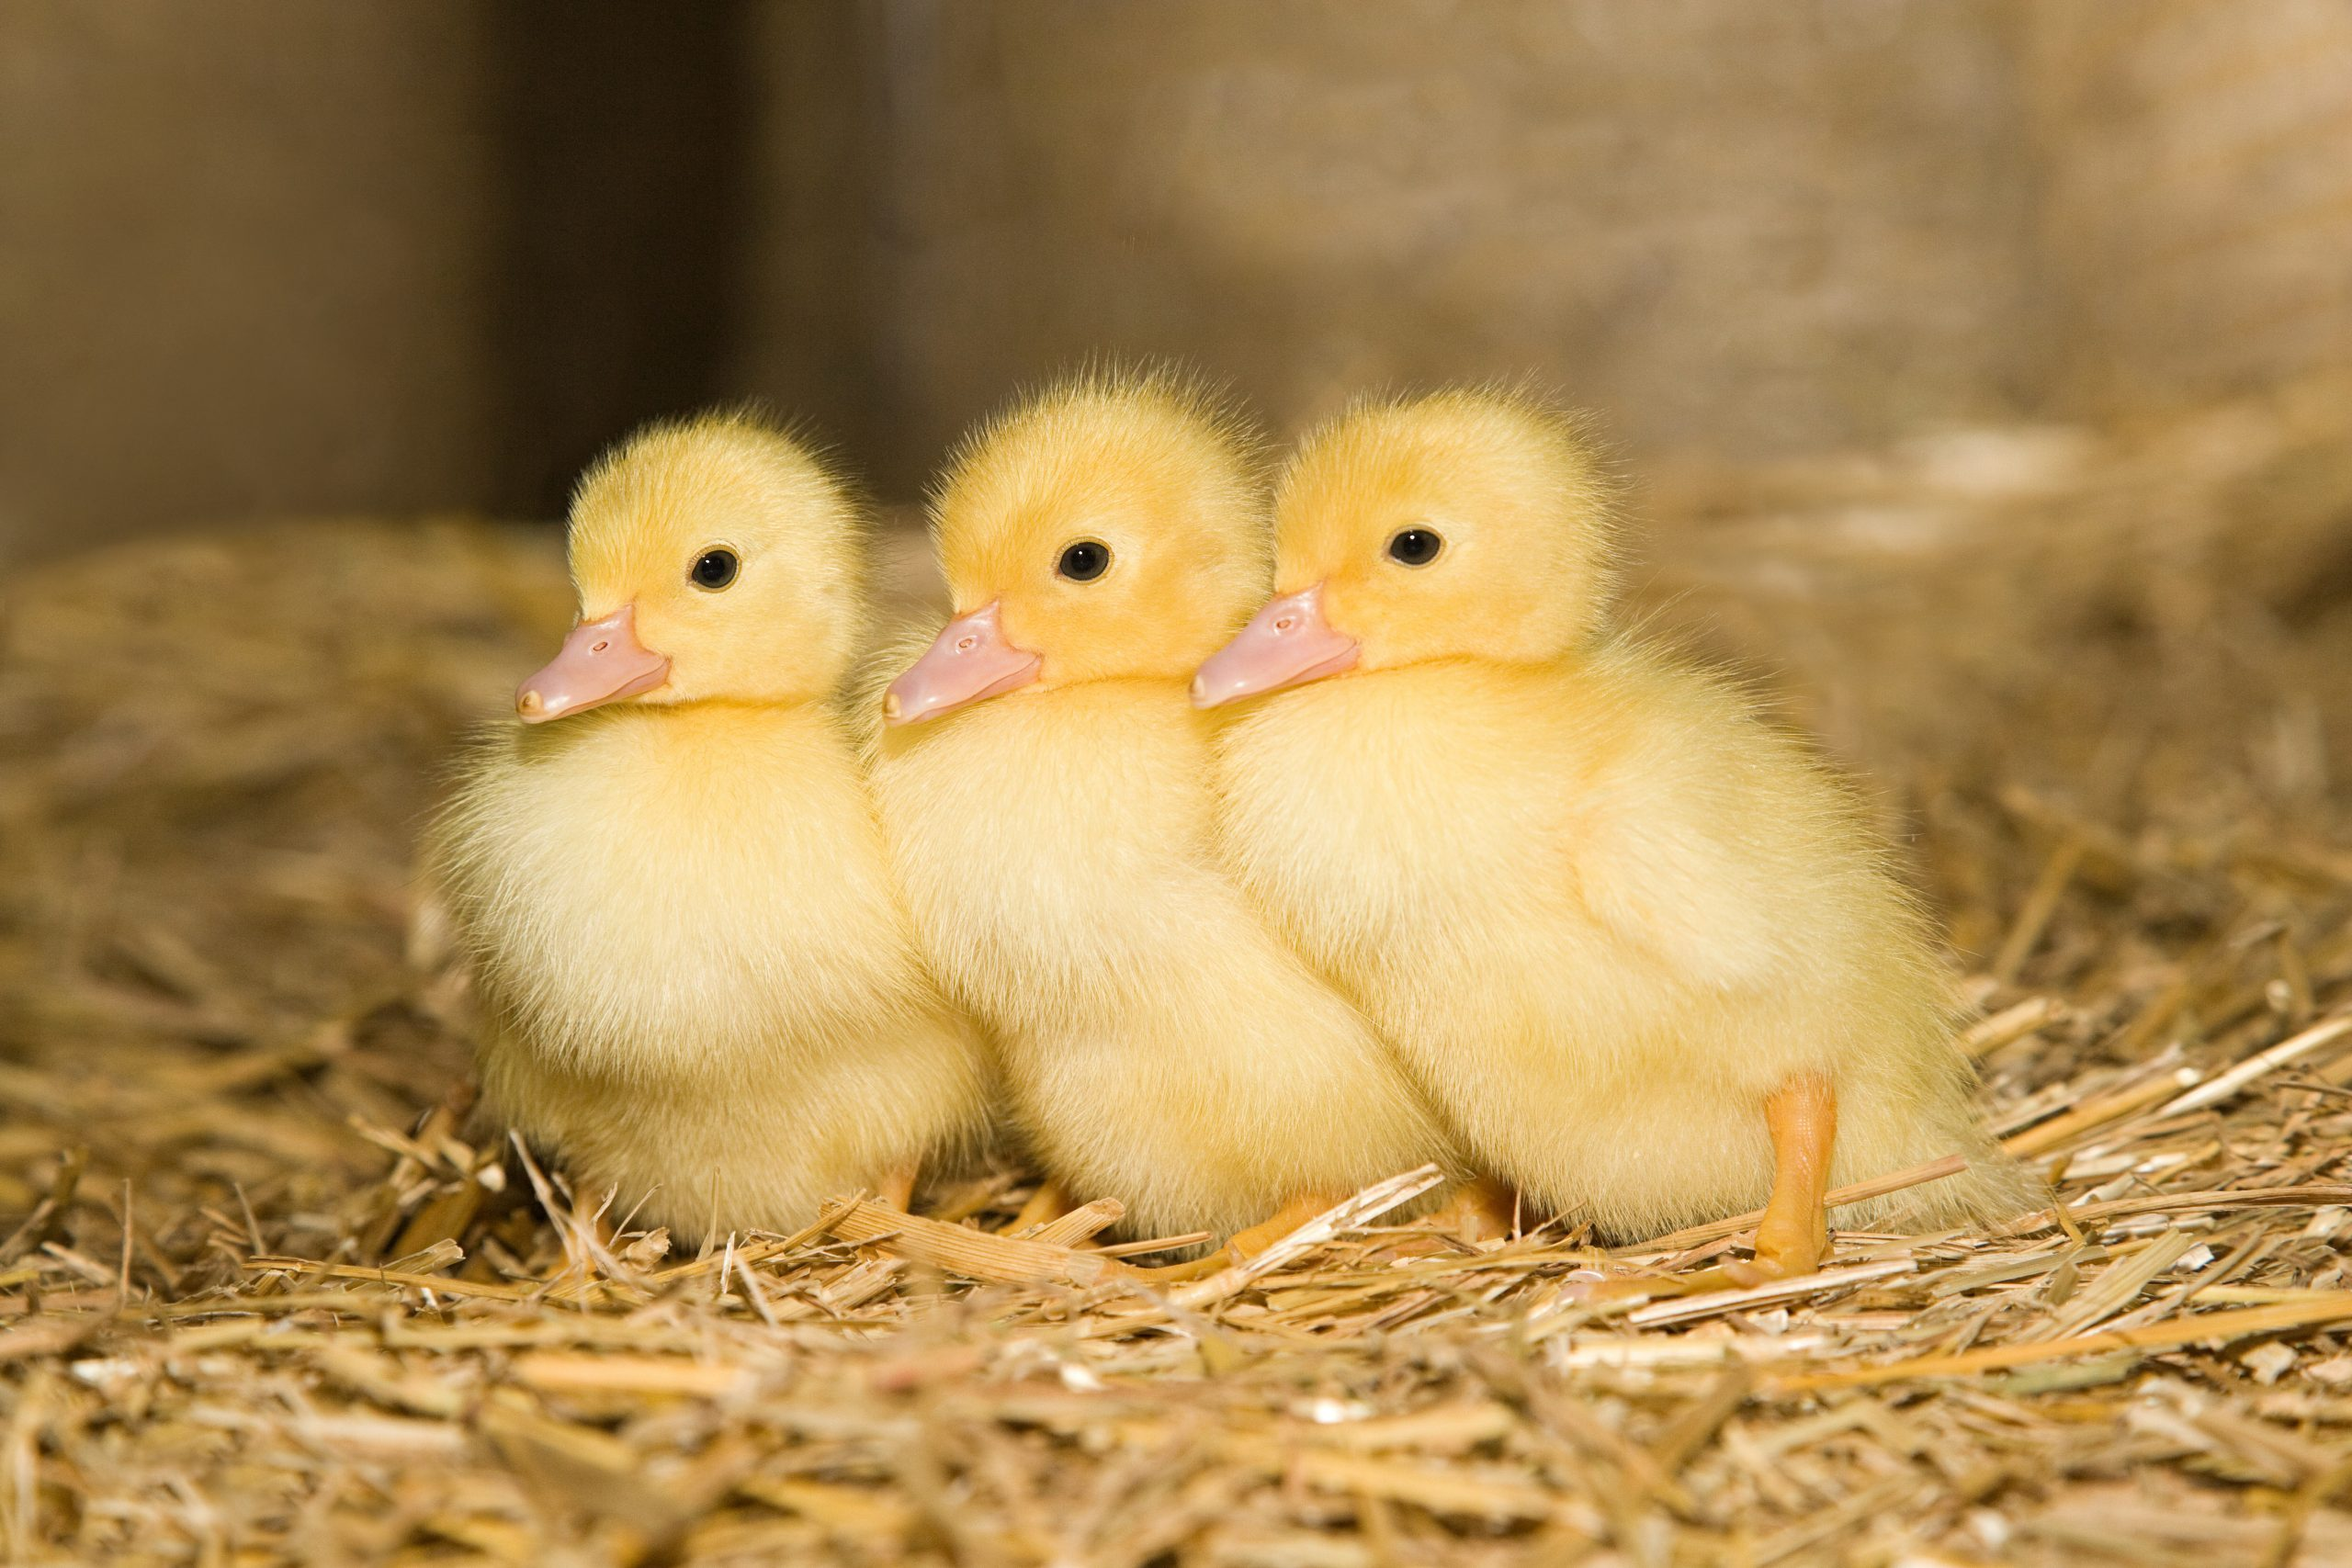 Three ducklings on straw